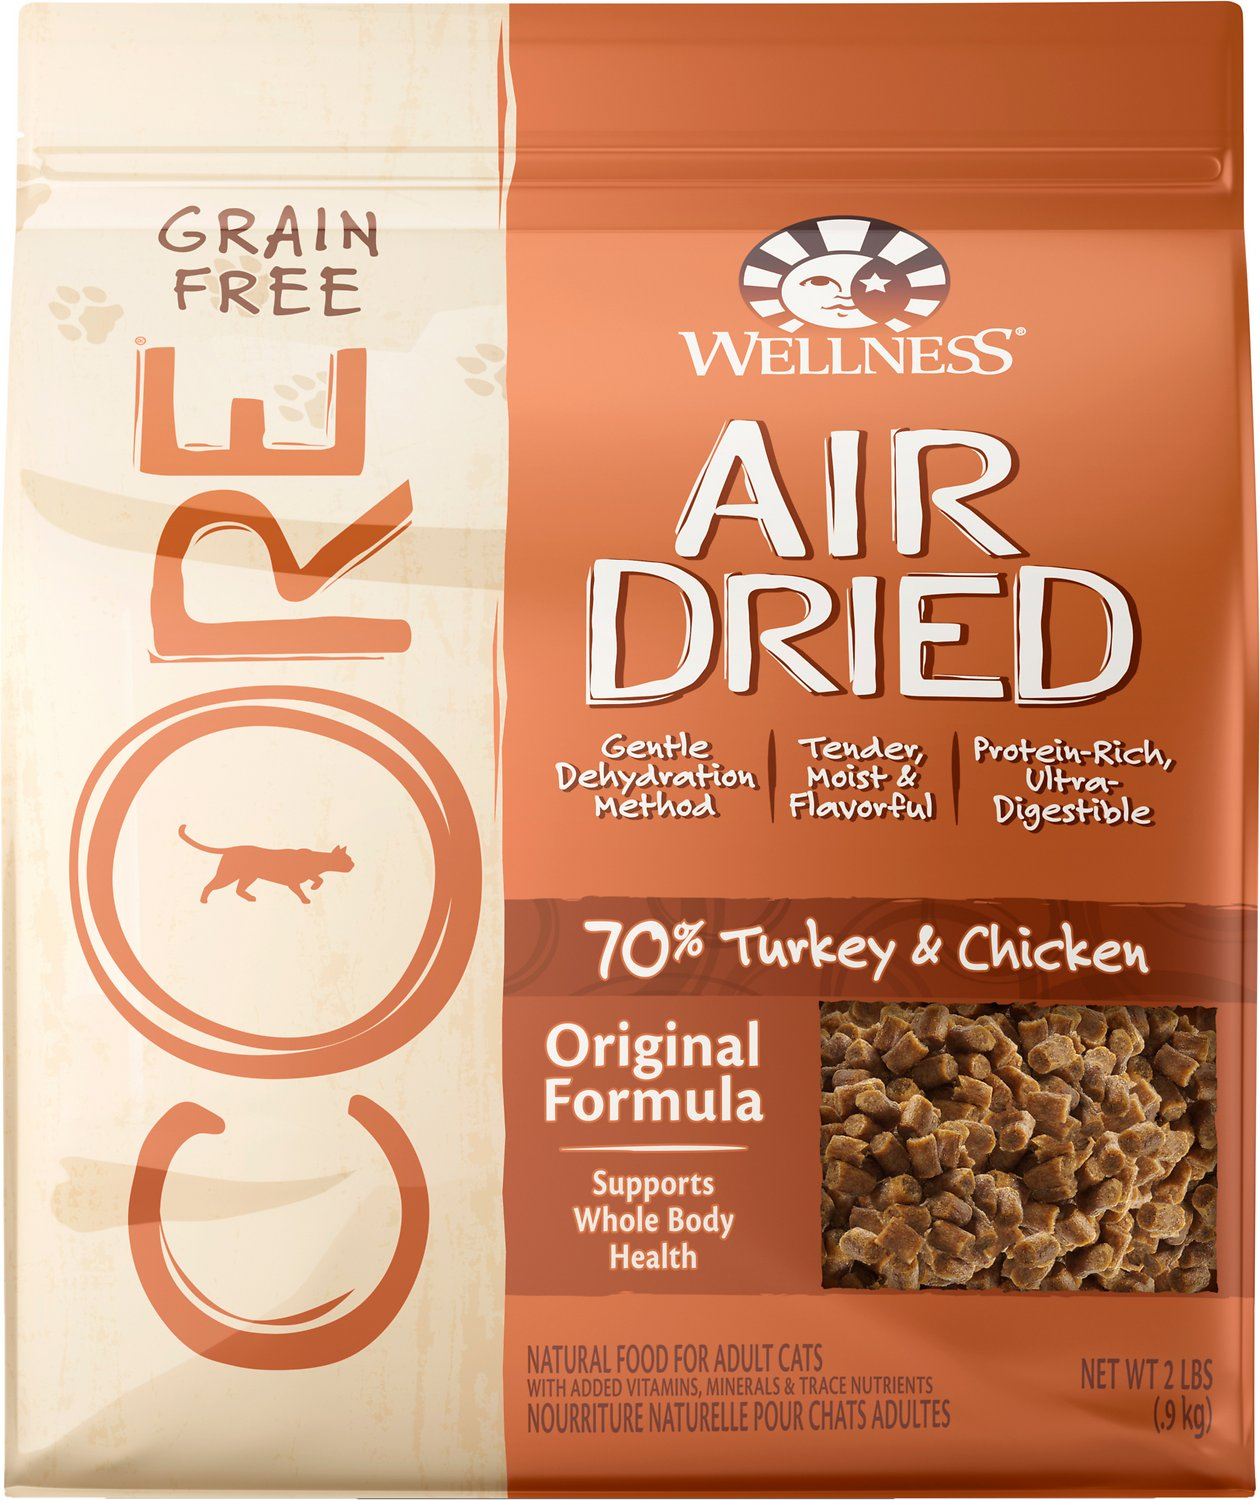 Wellness Core Air Dried Dog Food Reviews